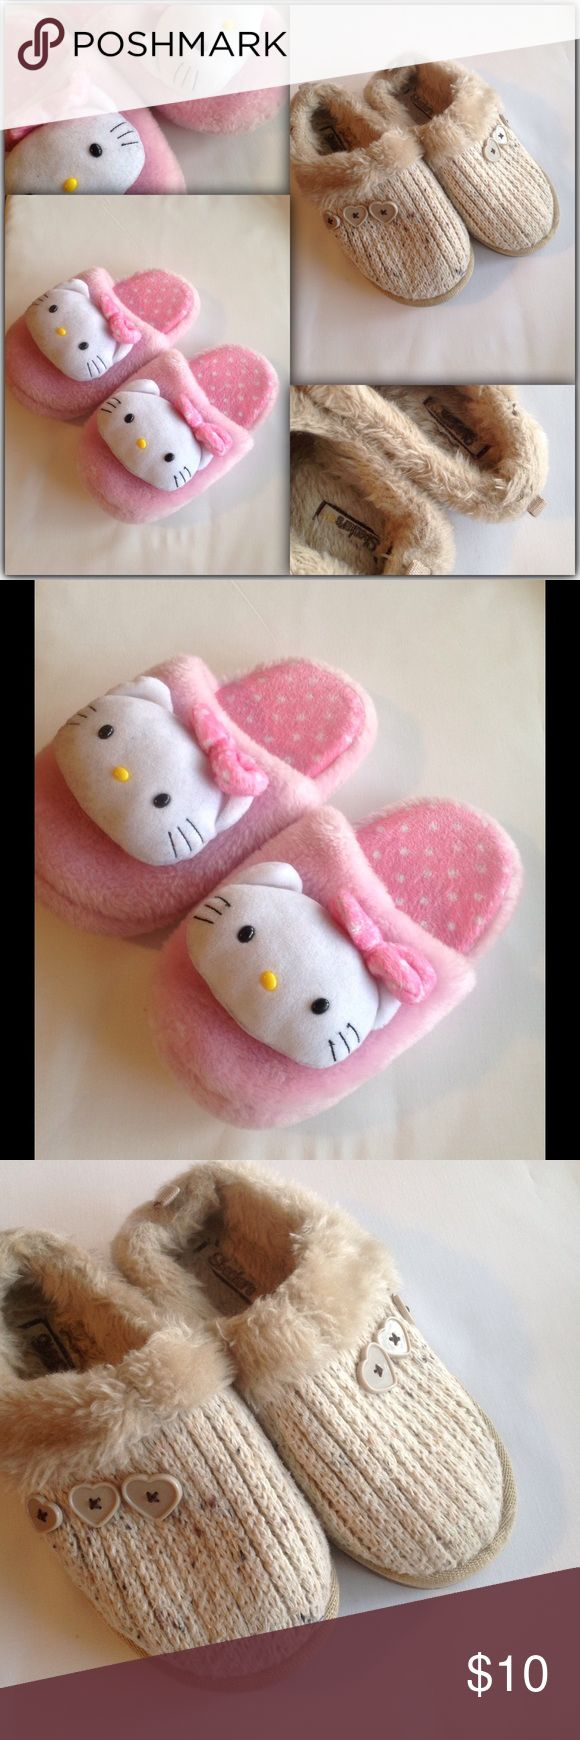 JUST IN✔️Kids slippers bundle size 1  and 2 Great condition kids slippers bundle hello kitty size 1-2  and Skechers size 1 Hello Kitty Shoes Slippers